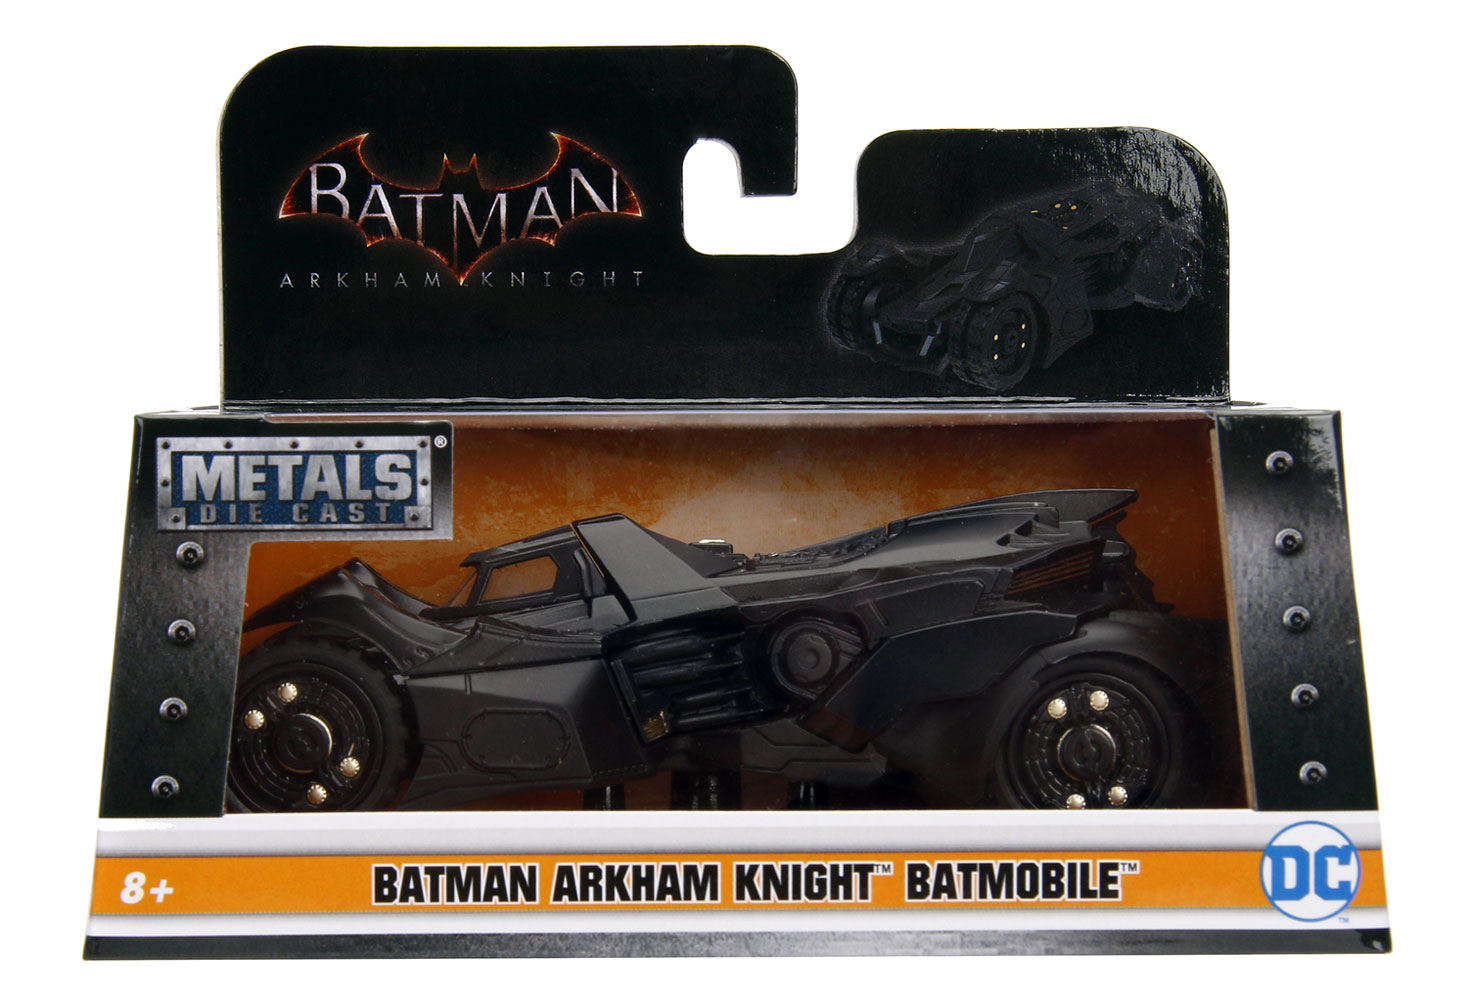 Metals Batmobile Vehicle: Arkham Knight  (1/32 Scale) - Jada Toys, Inc